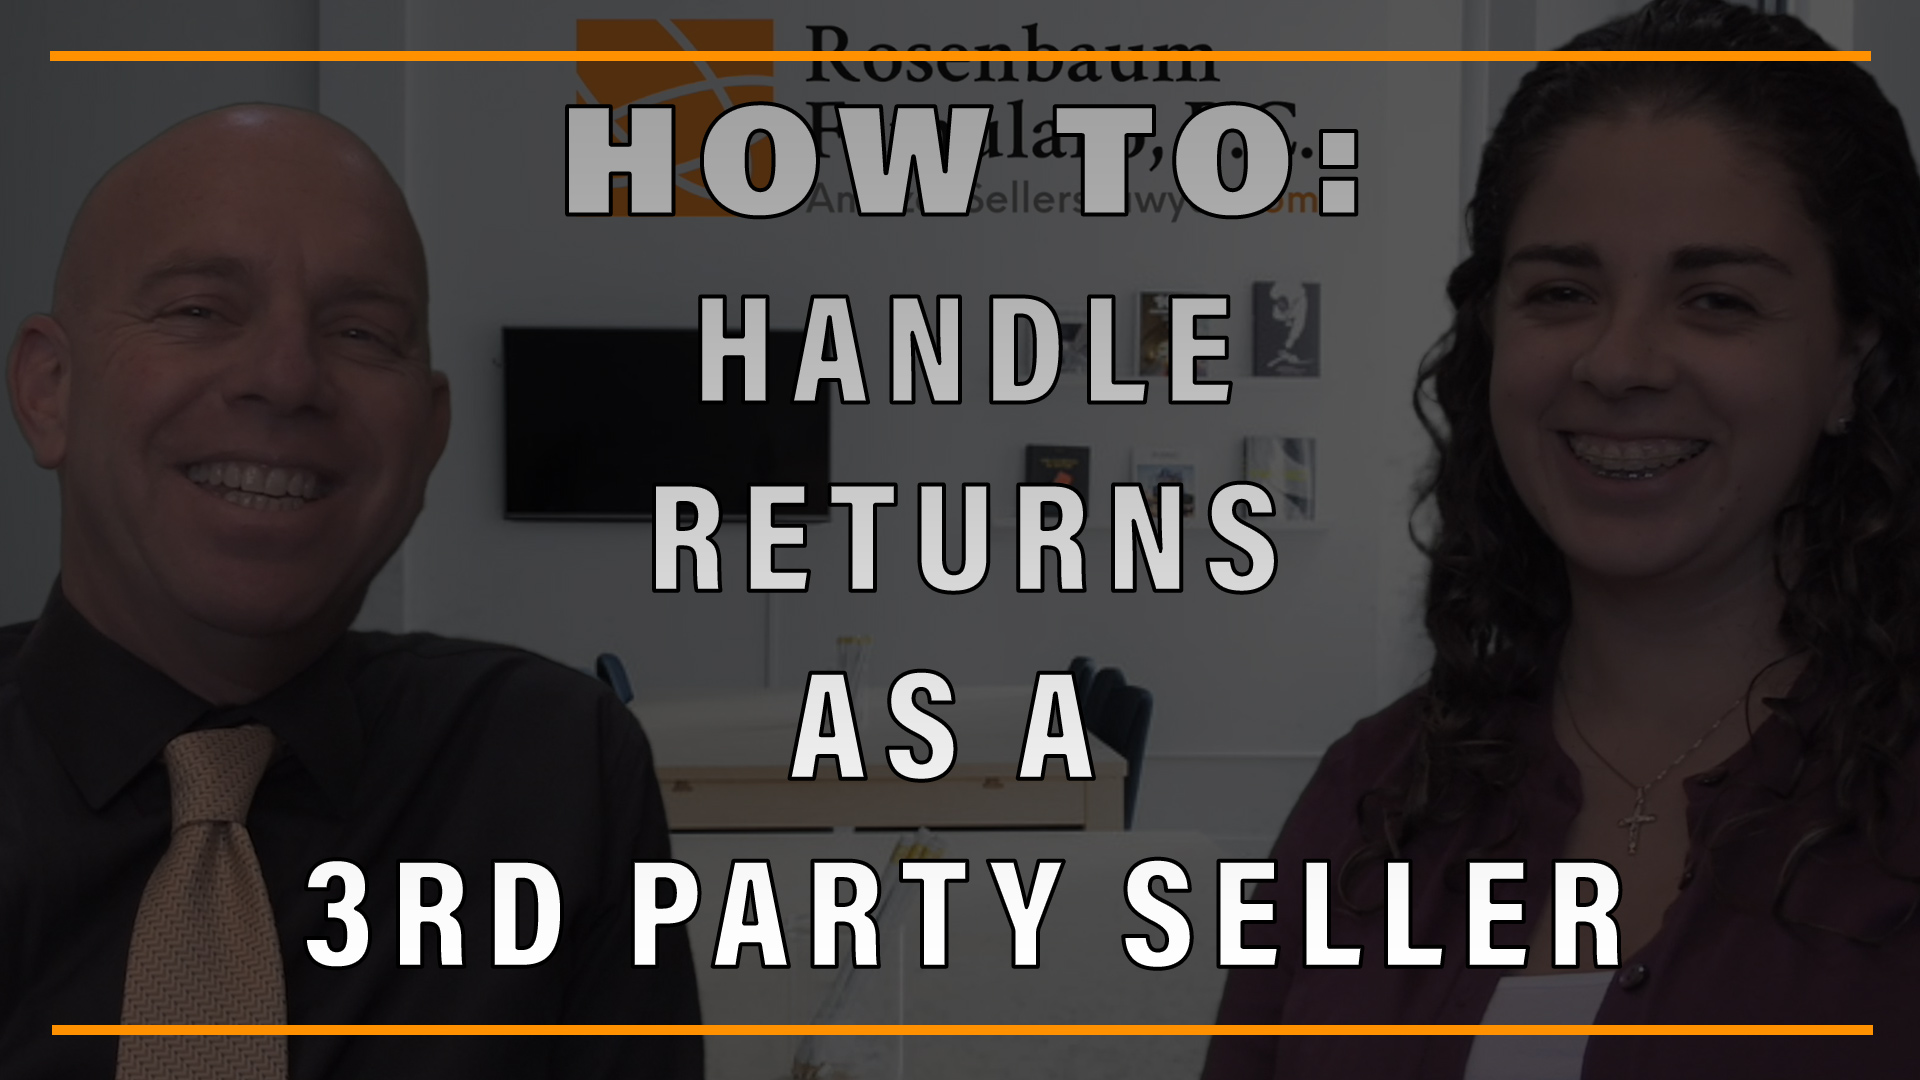 How to handle customer returns as a third party Amazon seller